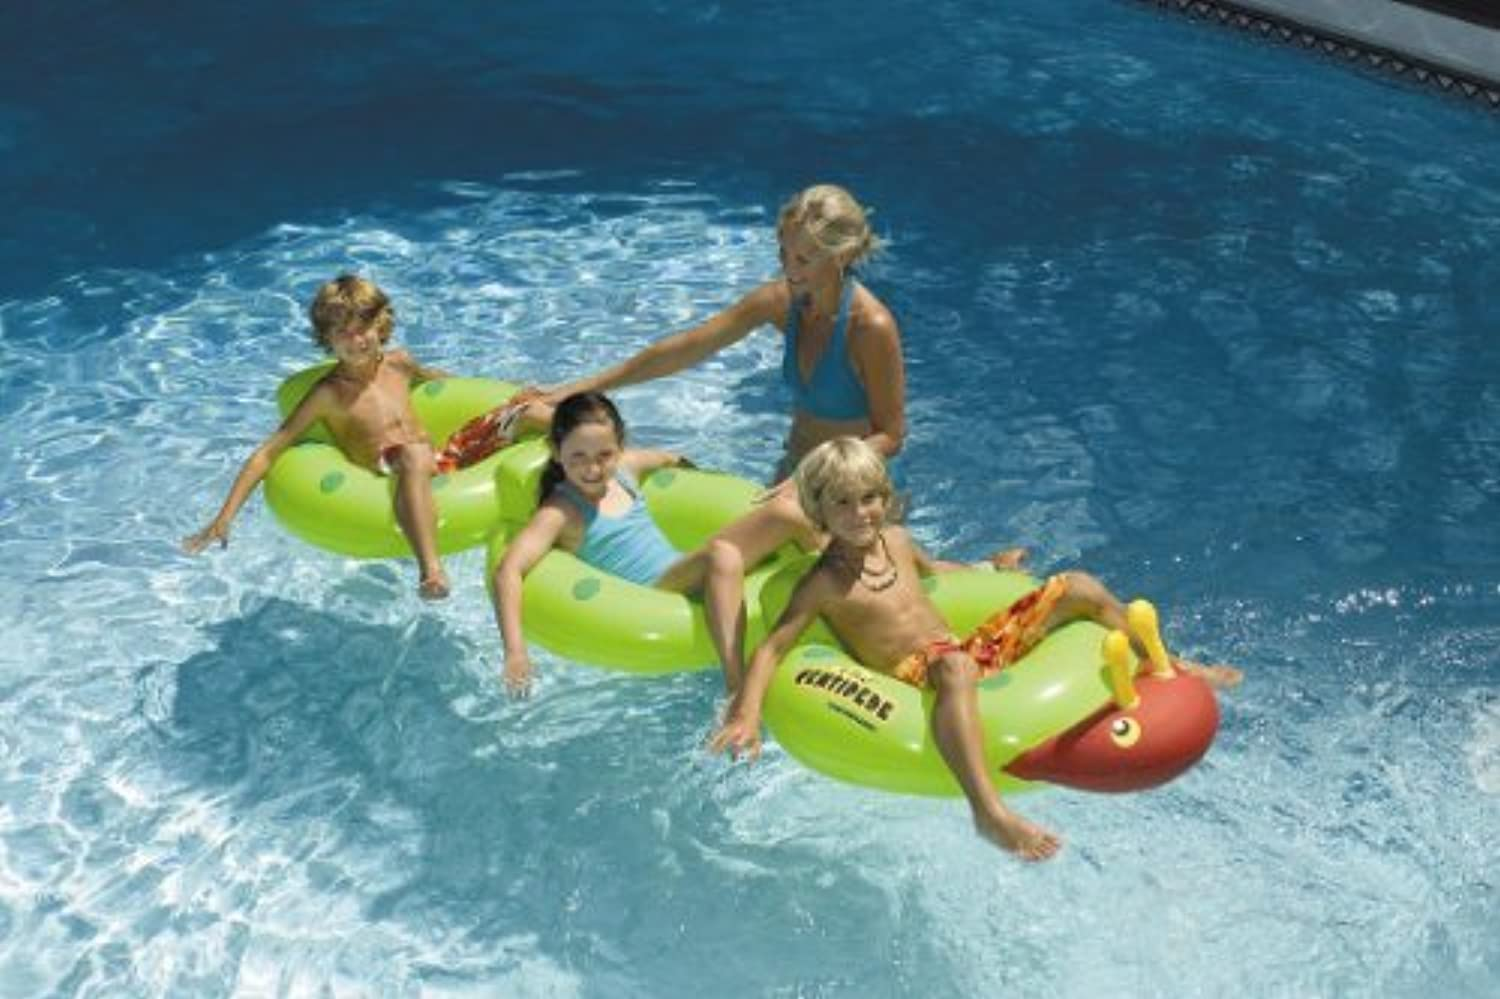 Centipede Floating Pool Tubes for 3 Kids by Not Found